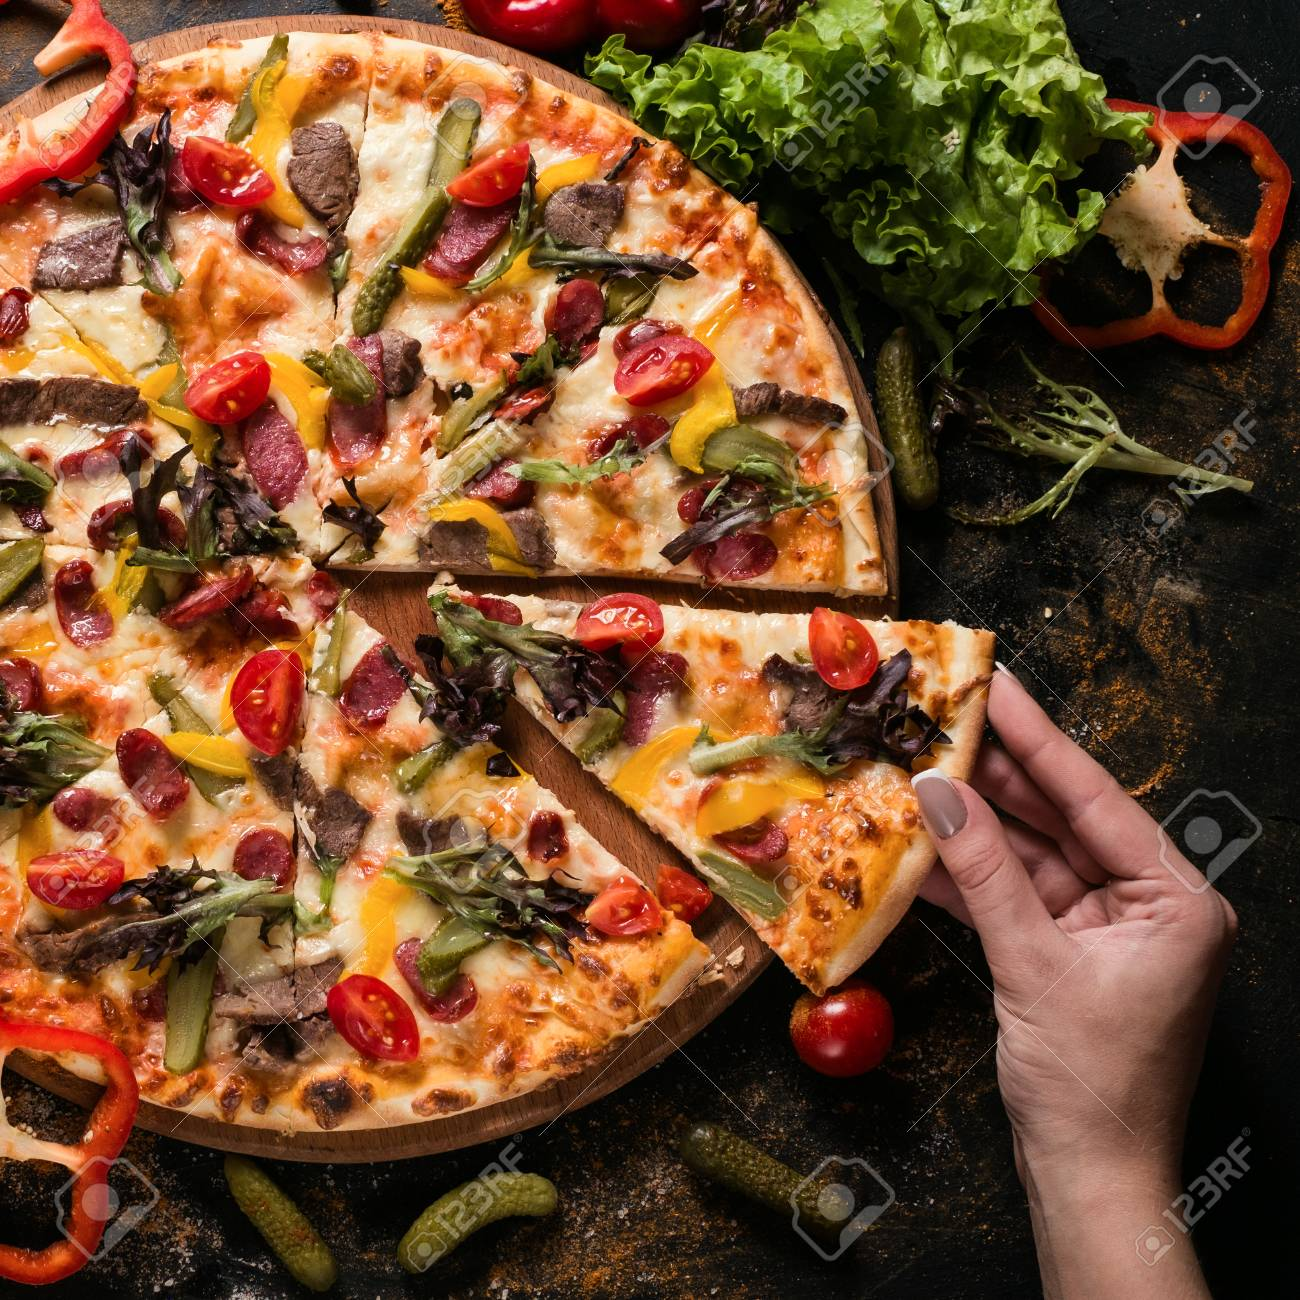 Food Photography Art Pizza Recipe Restaurant Menu Concept Stock Photo Picture And Royalty Free Image Image 88697292